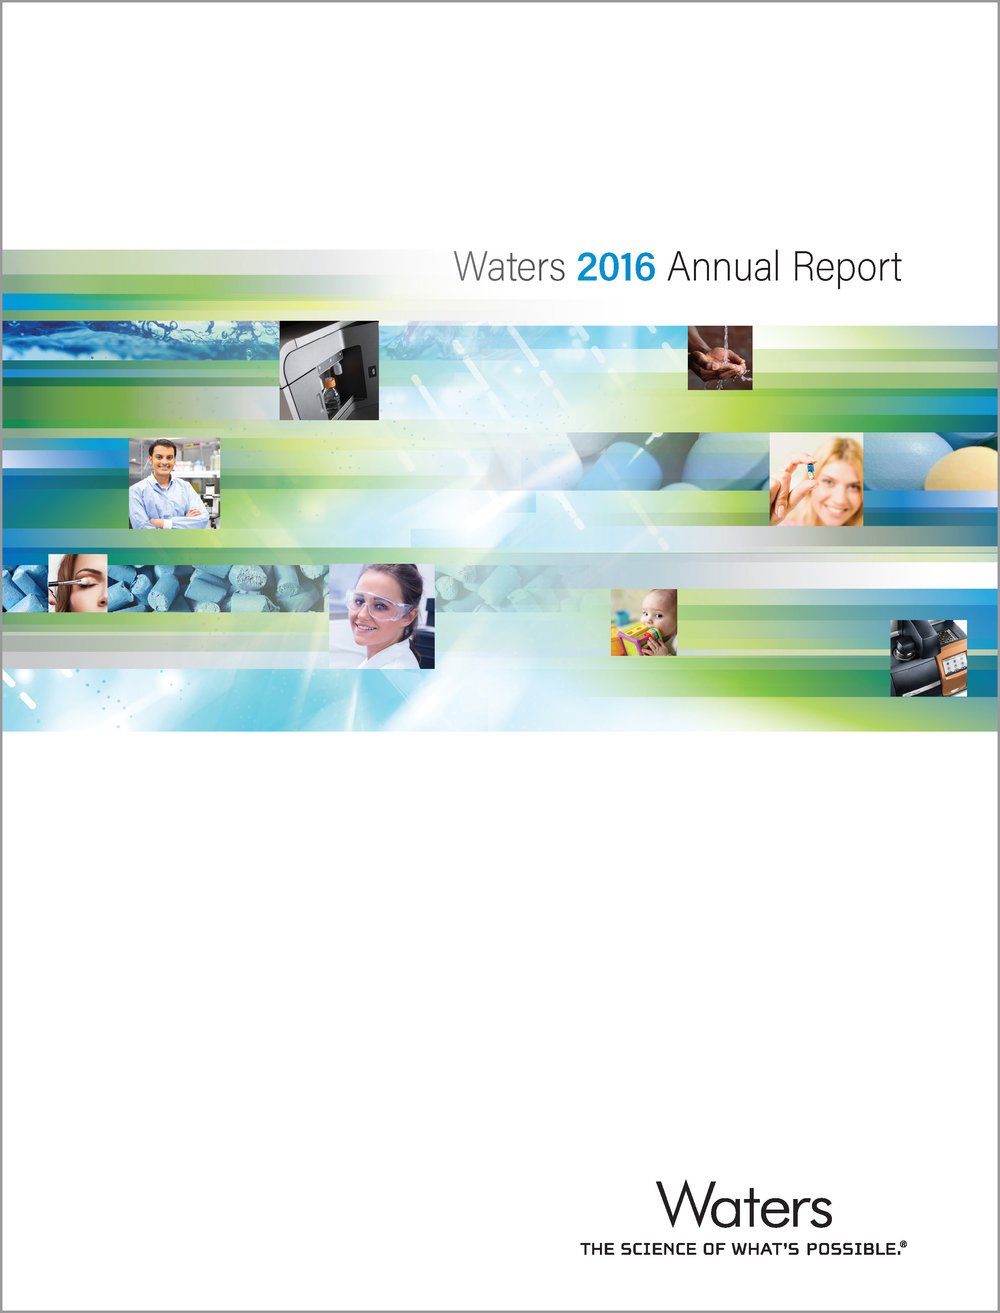 Waters 2016 Annual Report (cover)